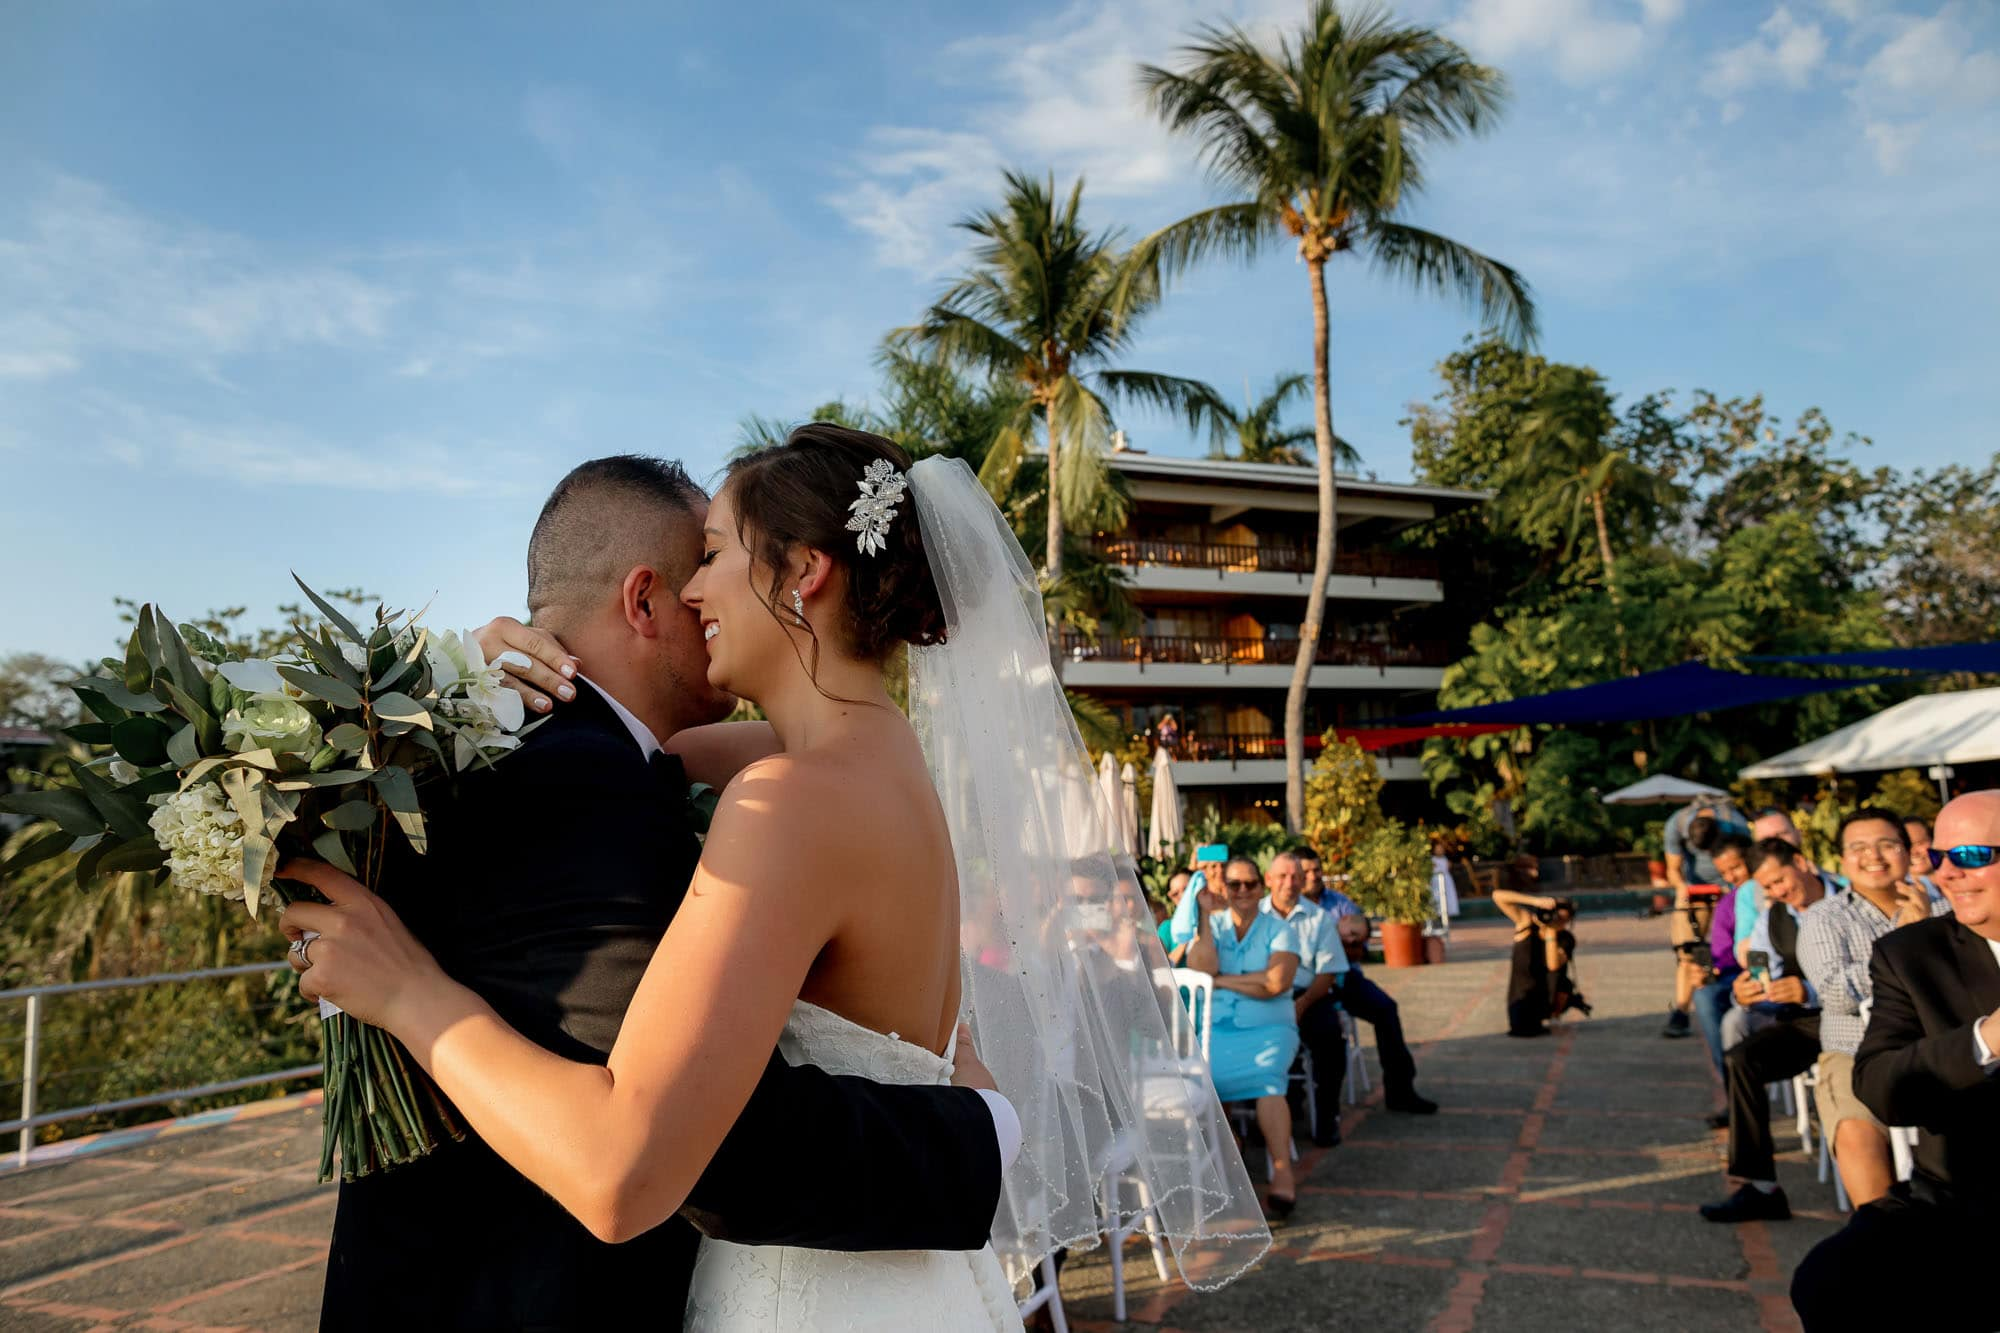 The bride and groom share a hug on the helipad at Costa Verde